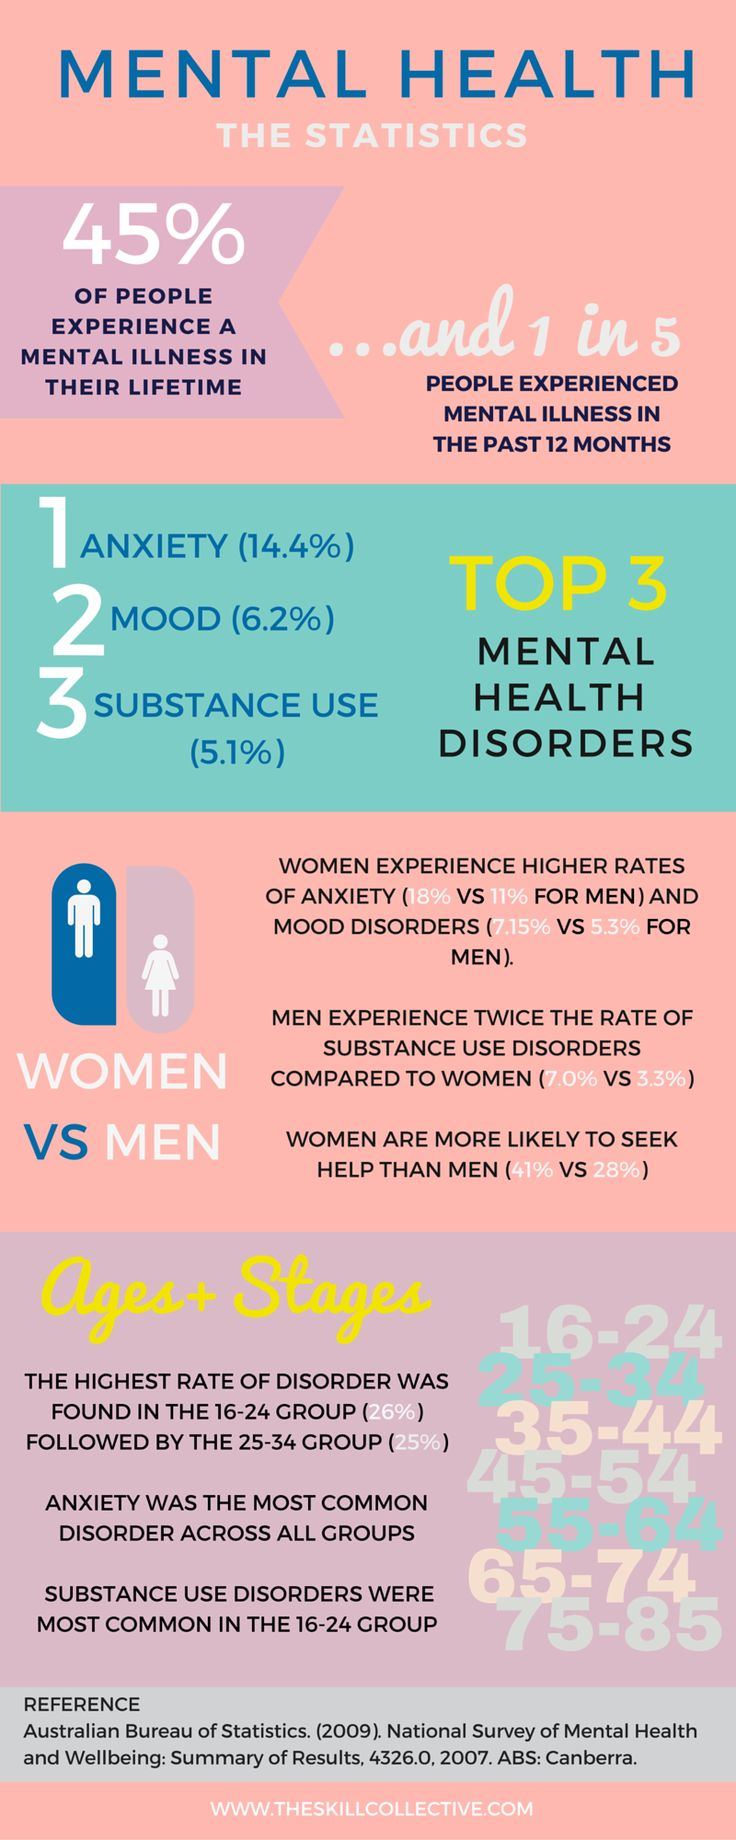 Statistics on mental health - gender differences, anxiety, depression, and substance use